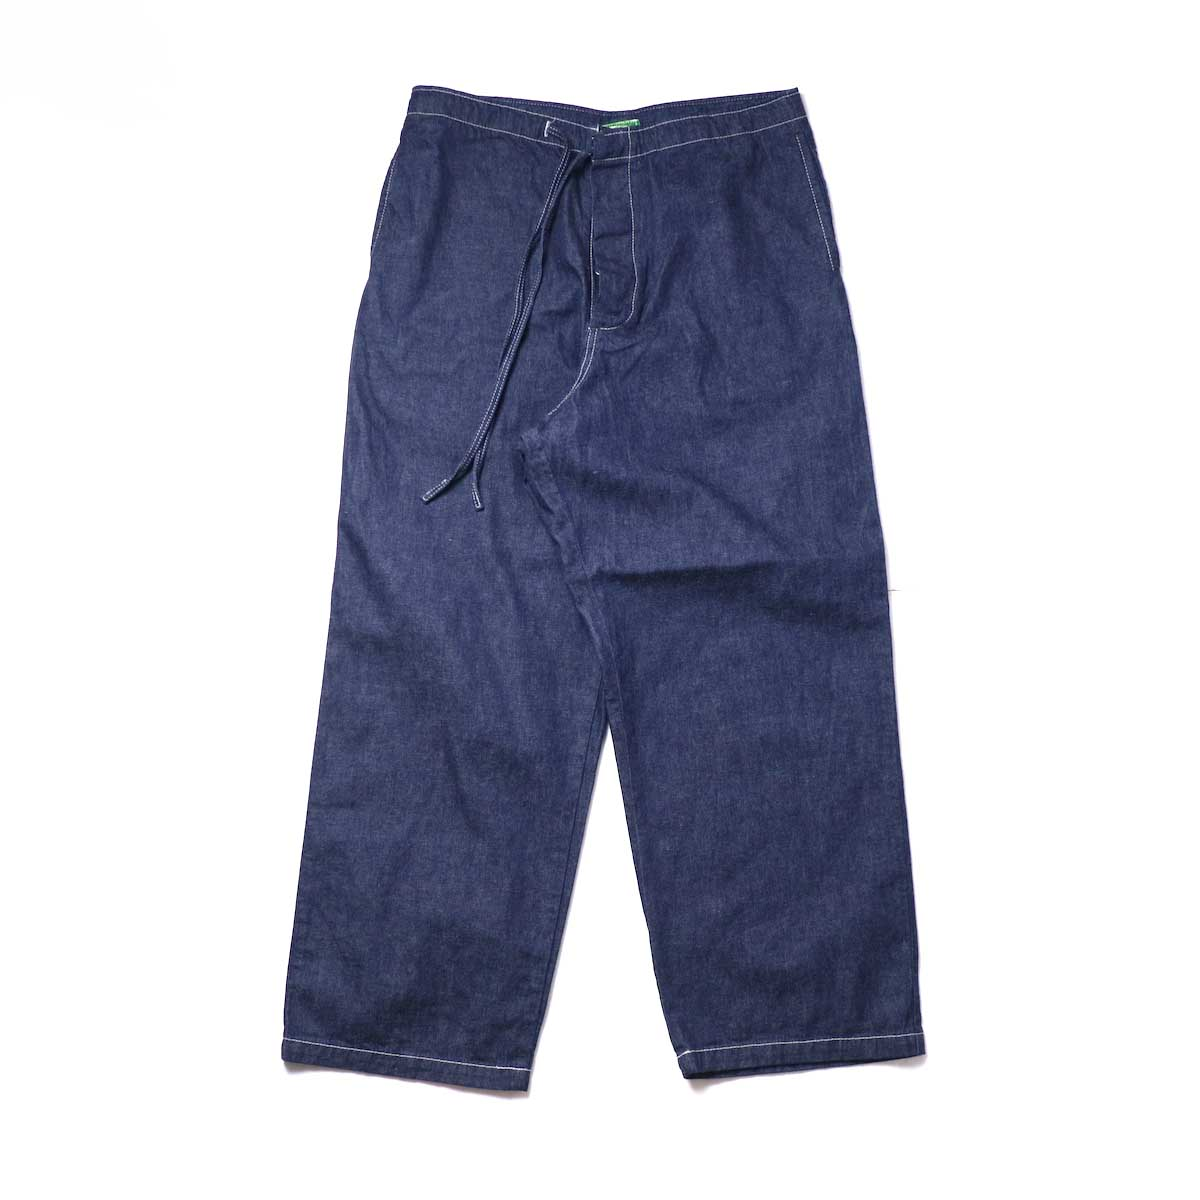 MexiPa / Selvage Denim Mexican PT正面